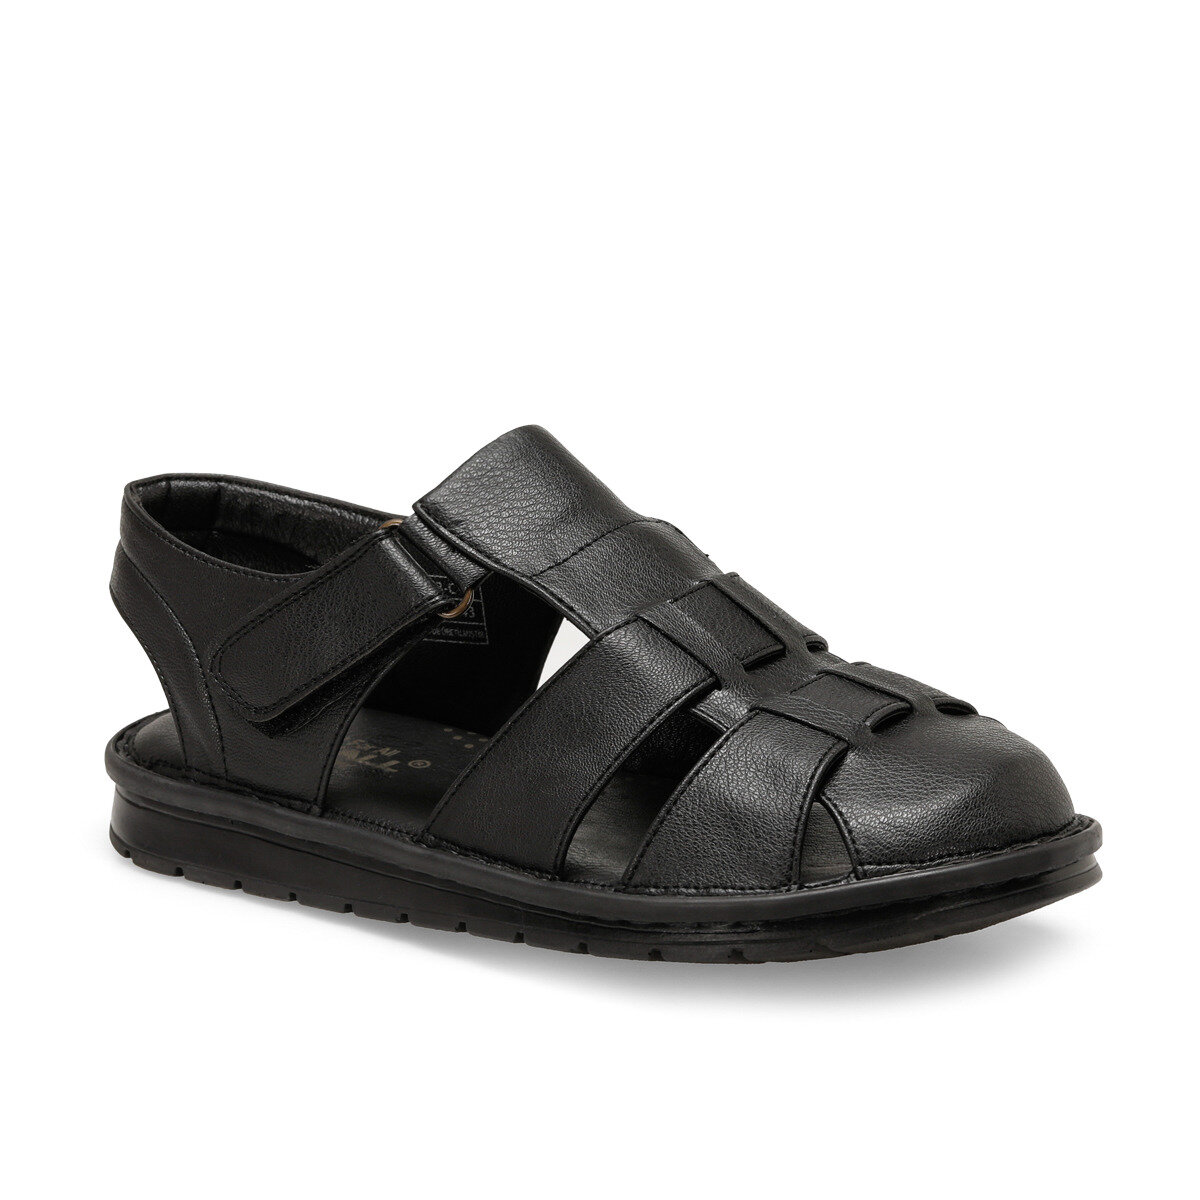 FLO 103 C Black Male Sandals Flexall